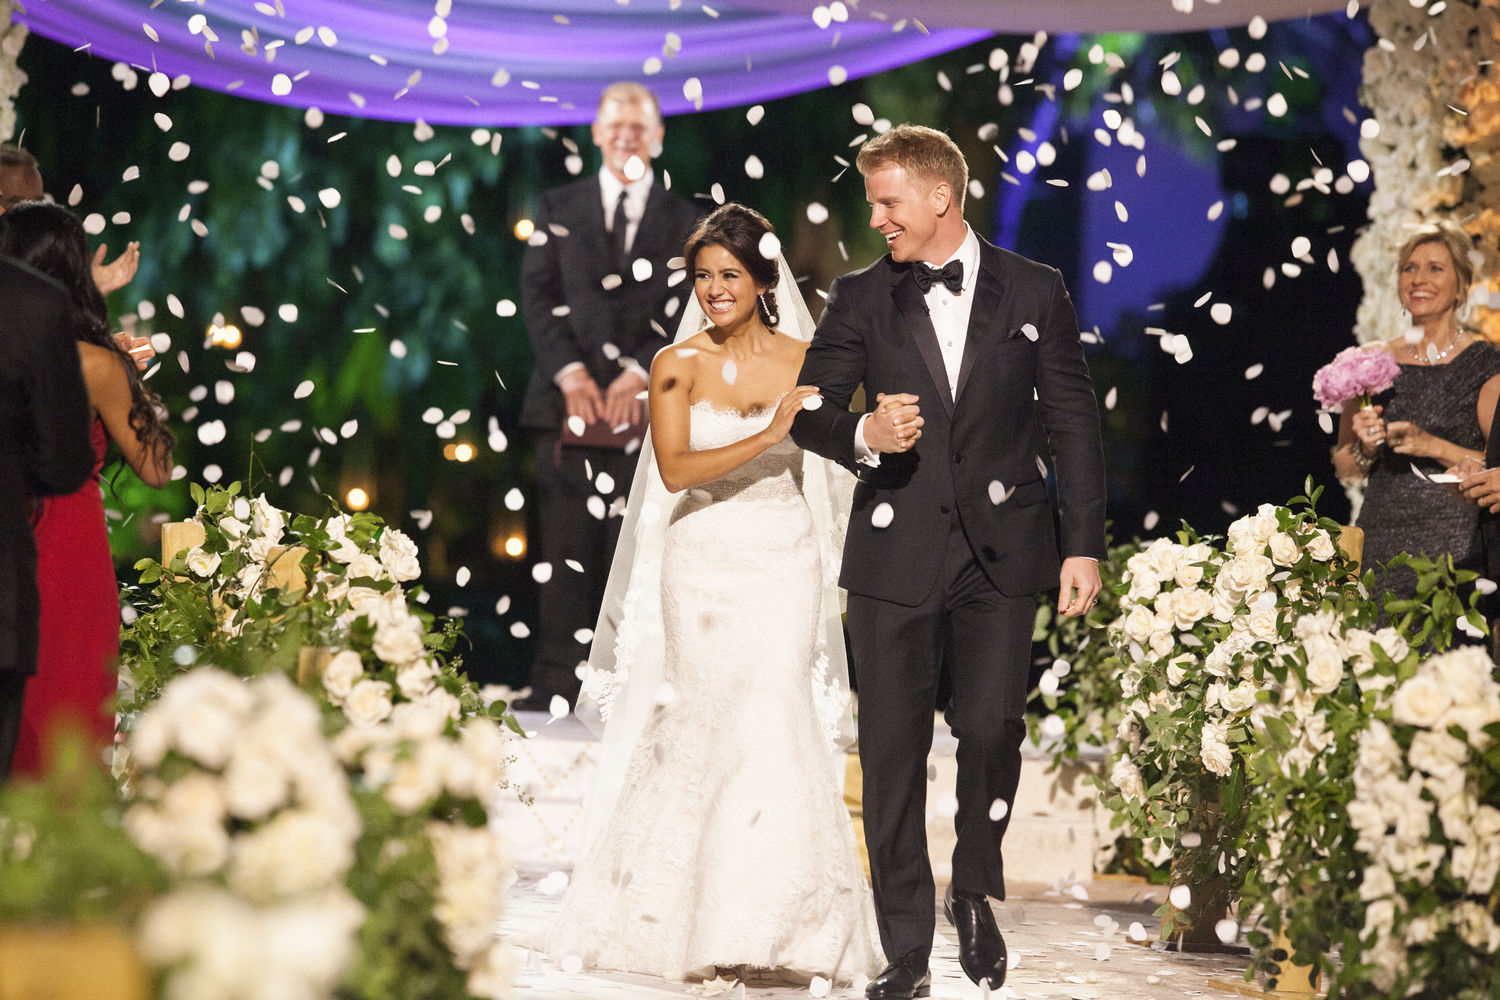 wedding-abc-bachelor-sean-lowe-catherine-guidici-johnandjoseph155.jpg